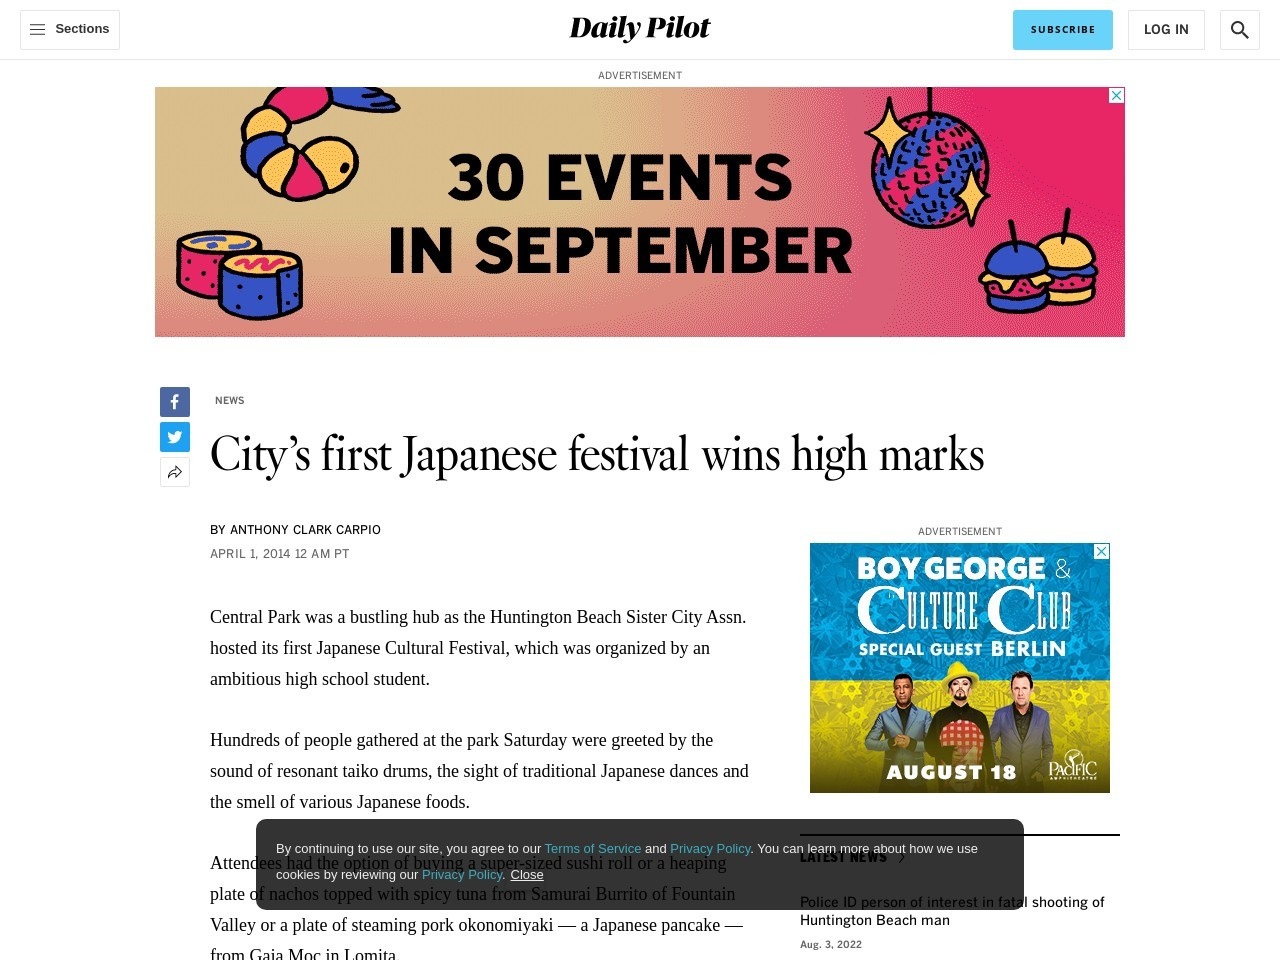 City's first Japanese festival wins high marks